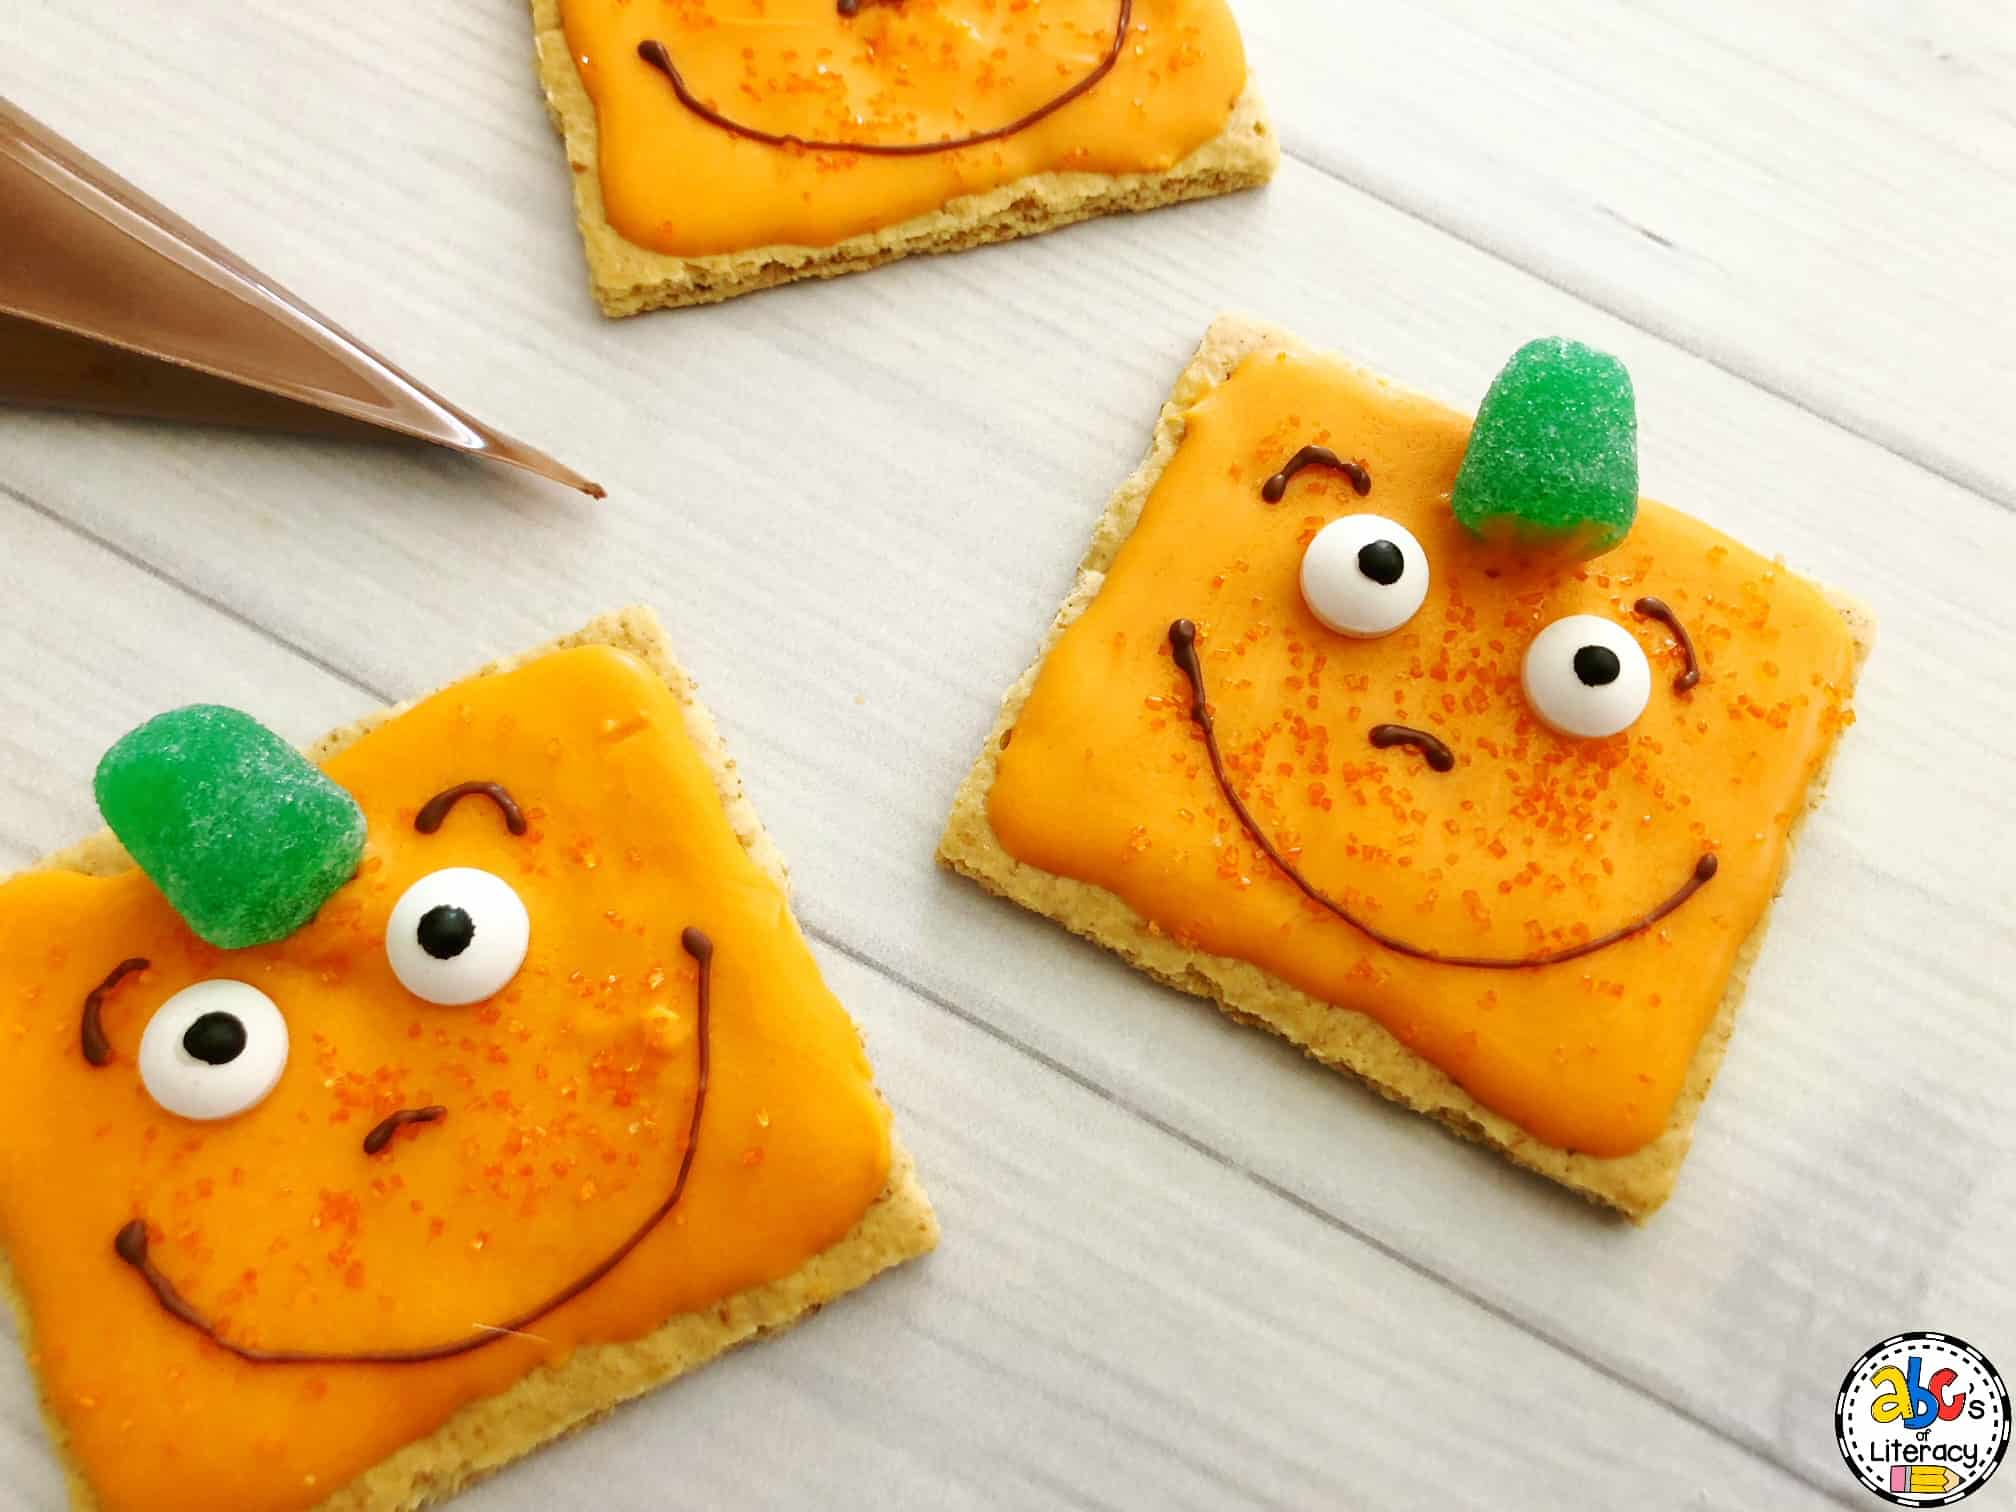 This Spookly the Square Pumpkin Snack is easy to make and delicious to eat. They are the perfect picture book activity during any Halloween party.